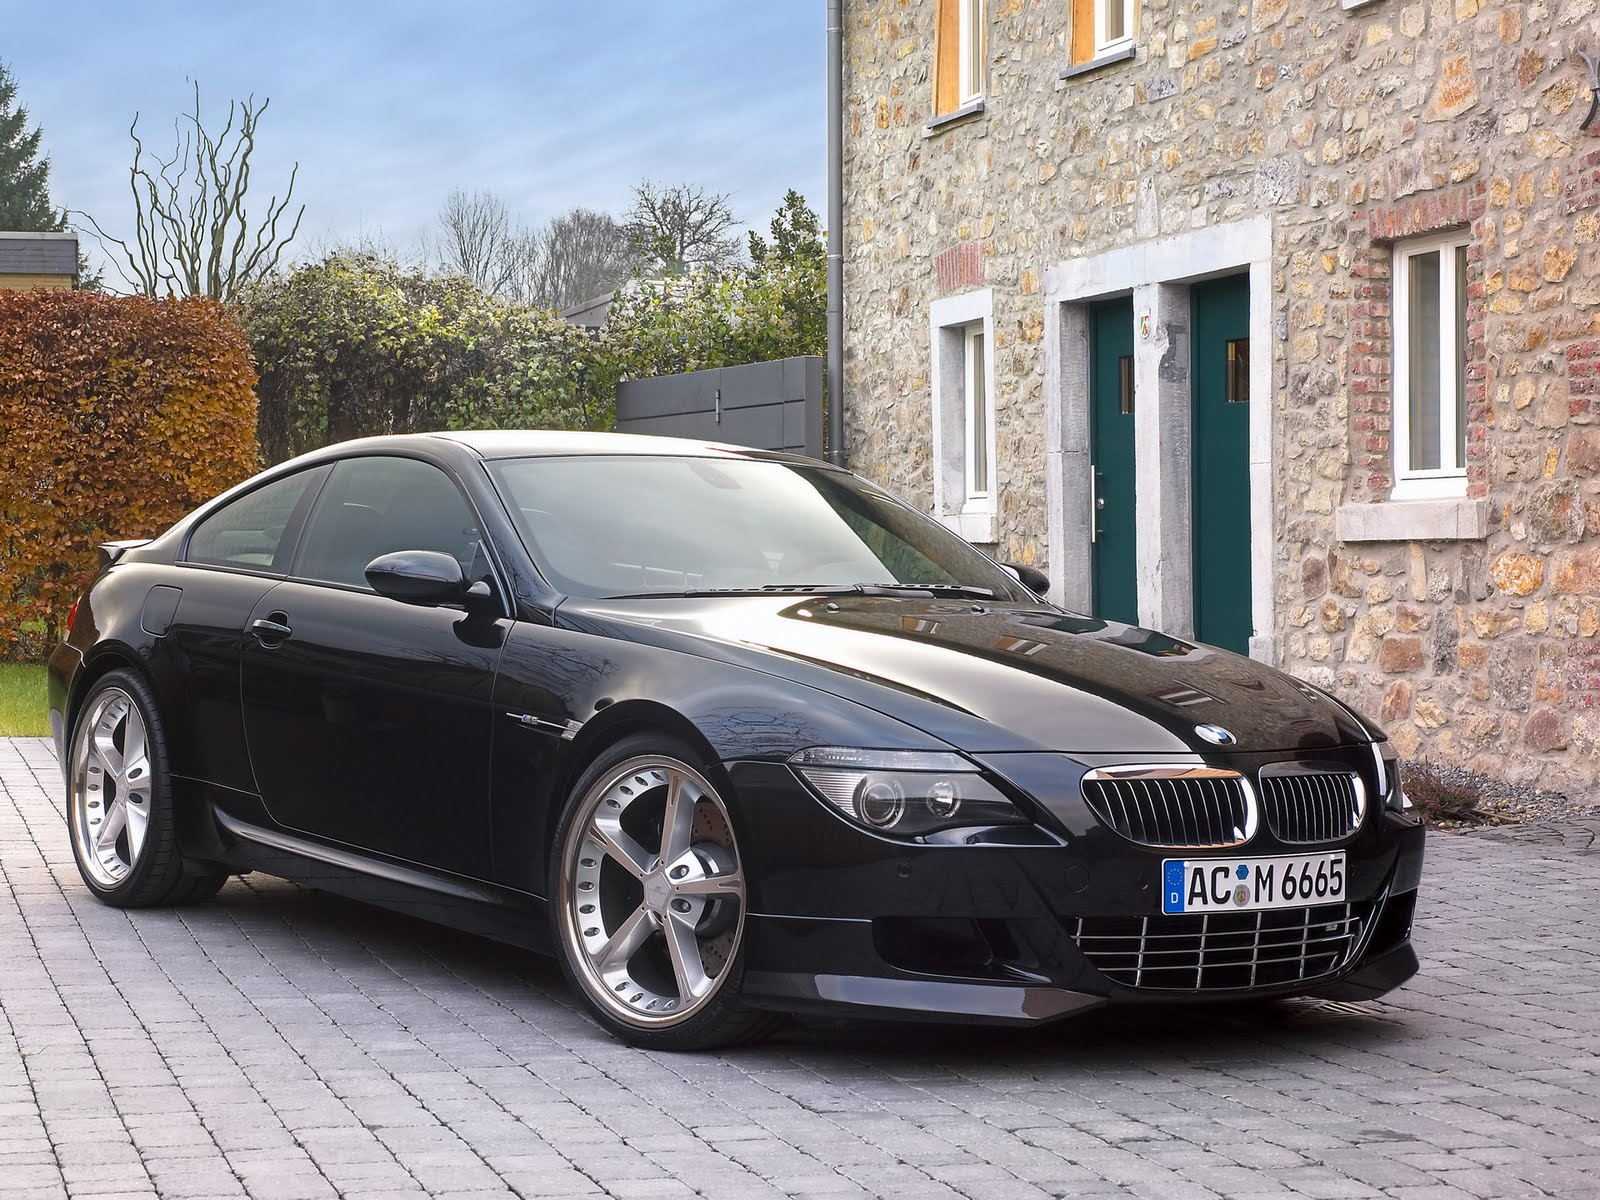 Black Bmw Car Wallpaper Cars Wallpapers And Pictures Car